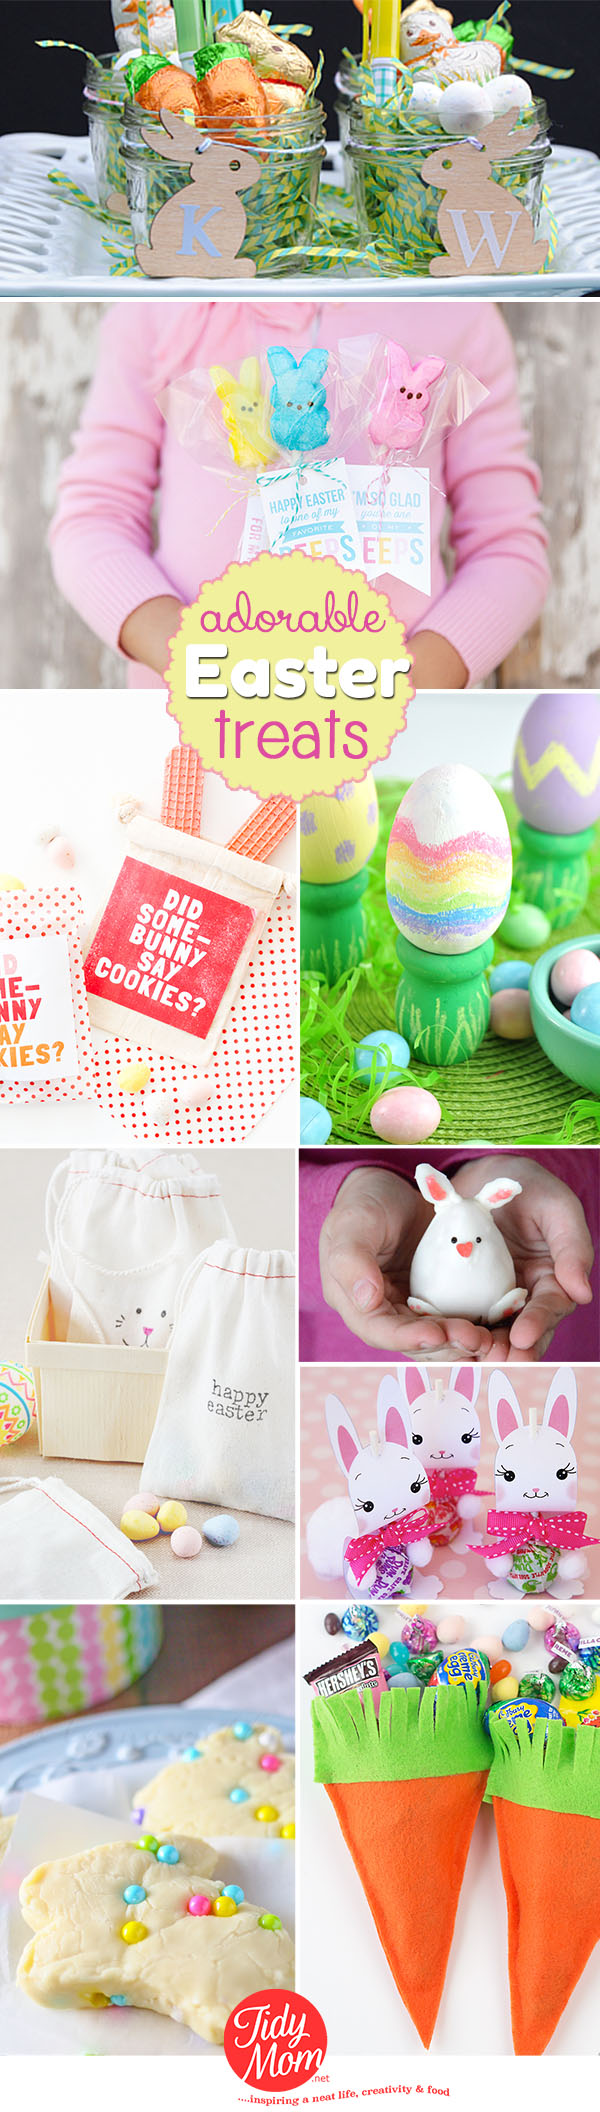 Delightful easter sweet treats to make tidymom adorable easter treats and gift ideas to make at tidymom negle Choice Image